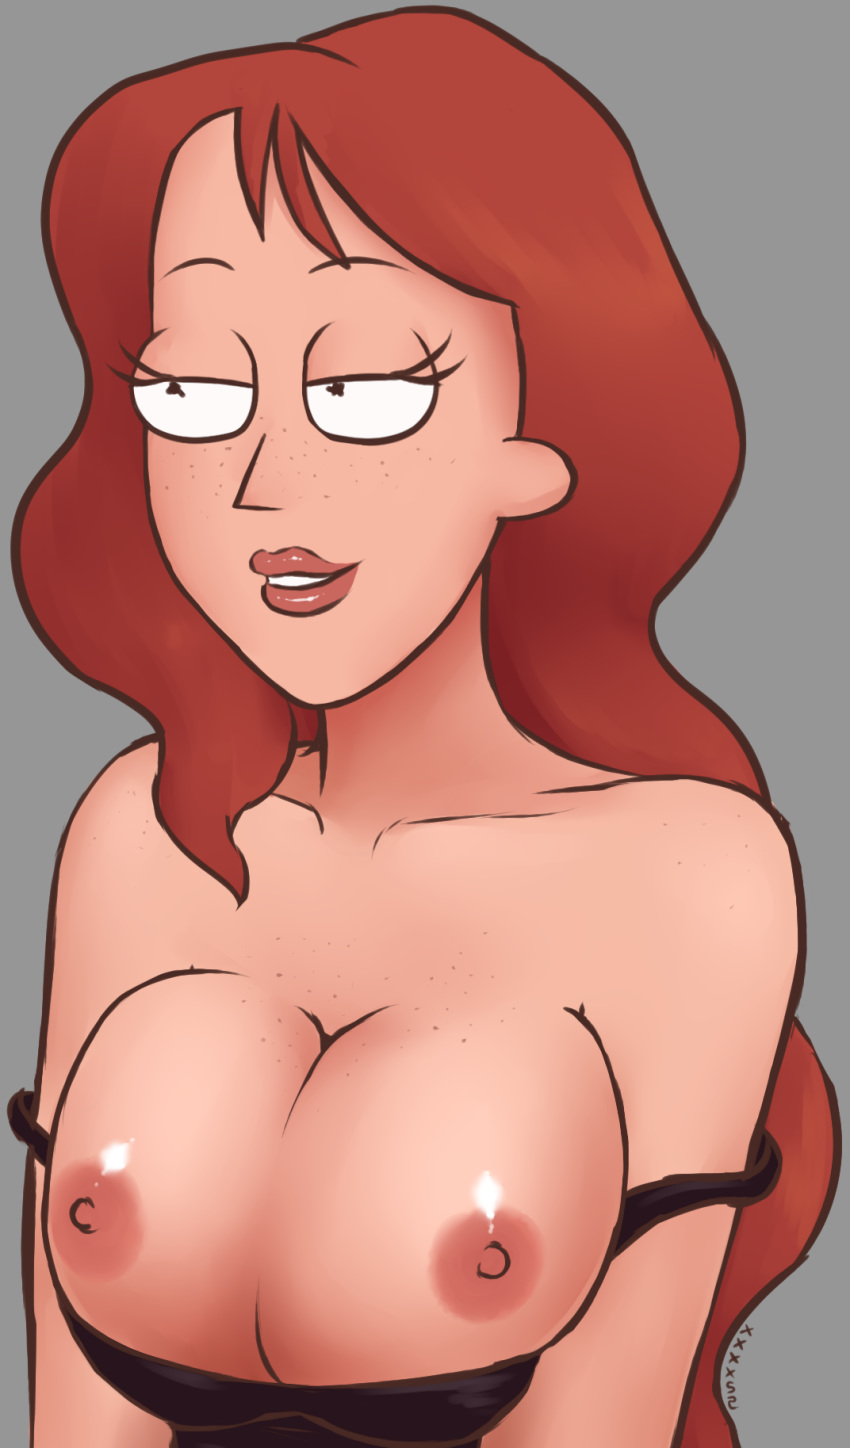 smith and rick summer nude morty Black hole chan